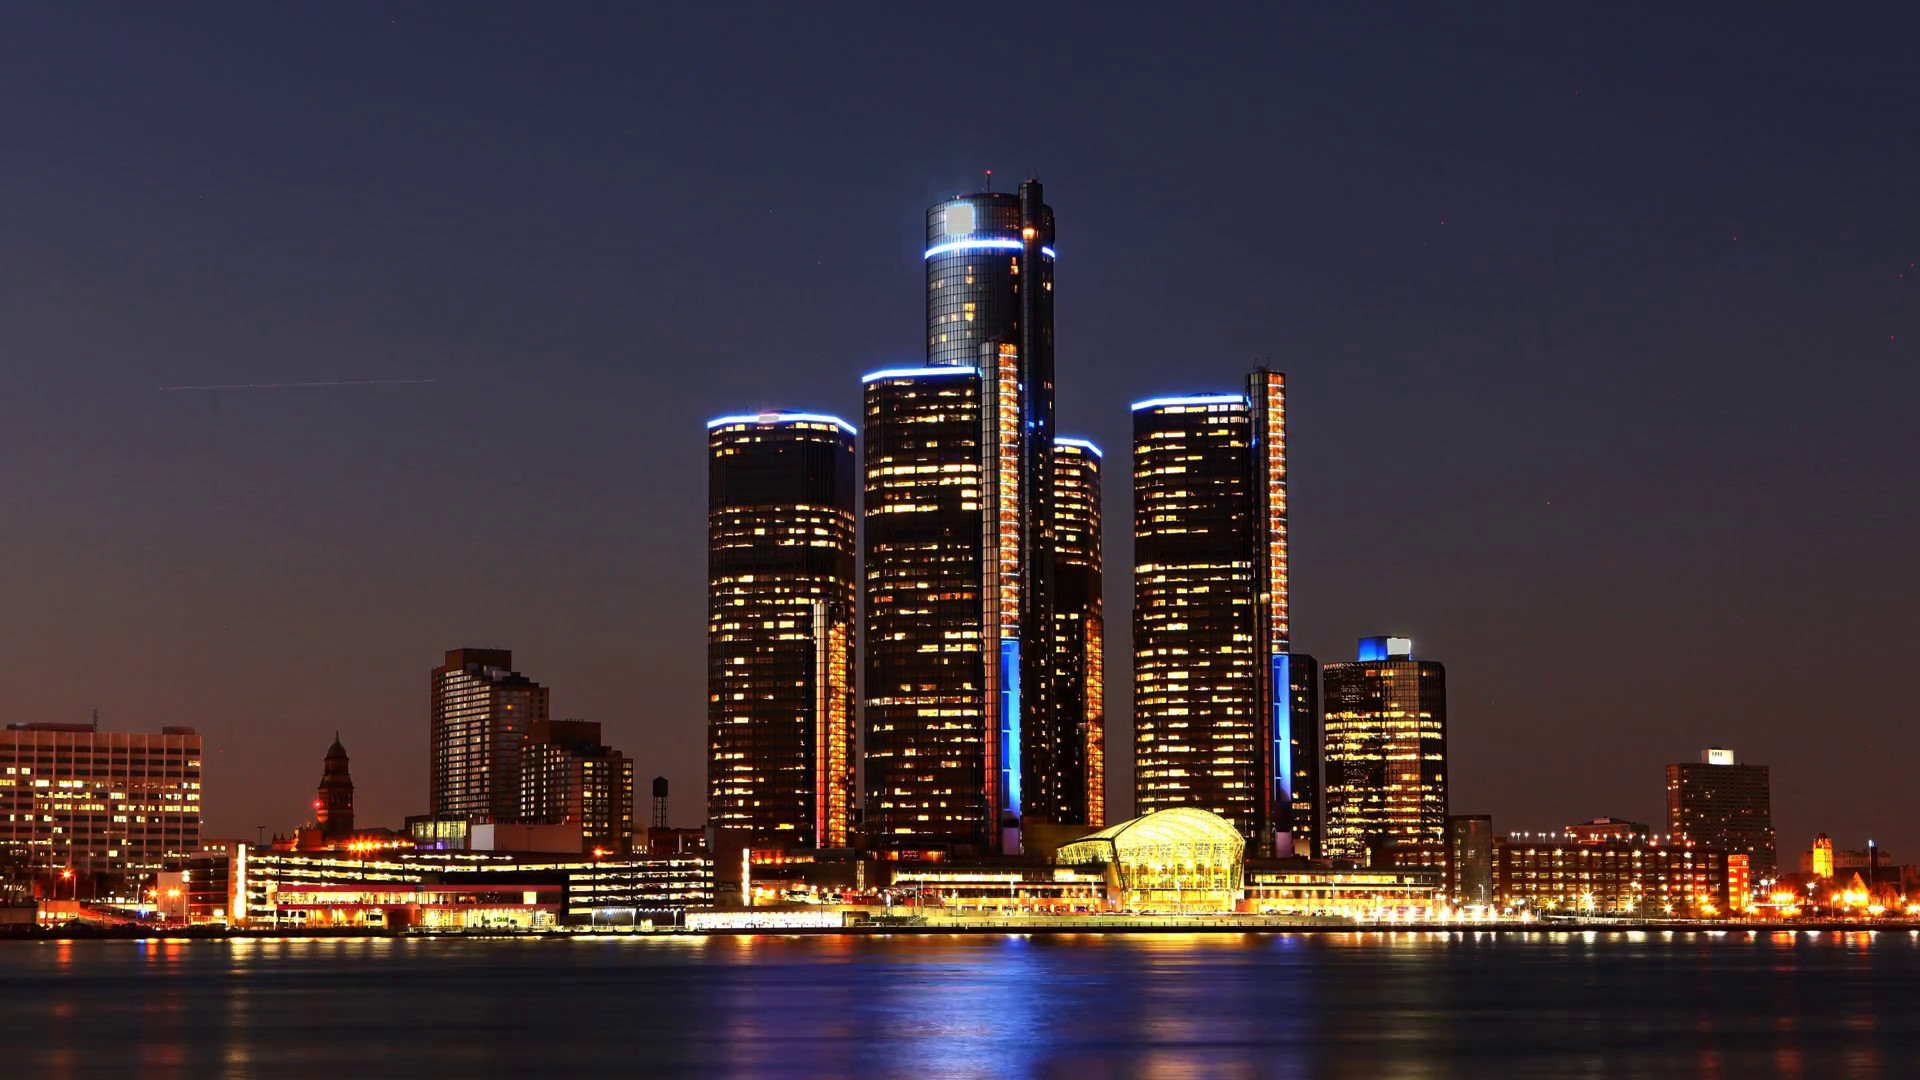 Detroit skyline wallpapers 73 background pictures - Skyline night wallpaper ...